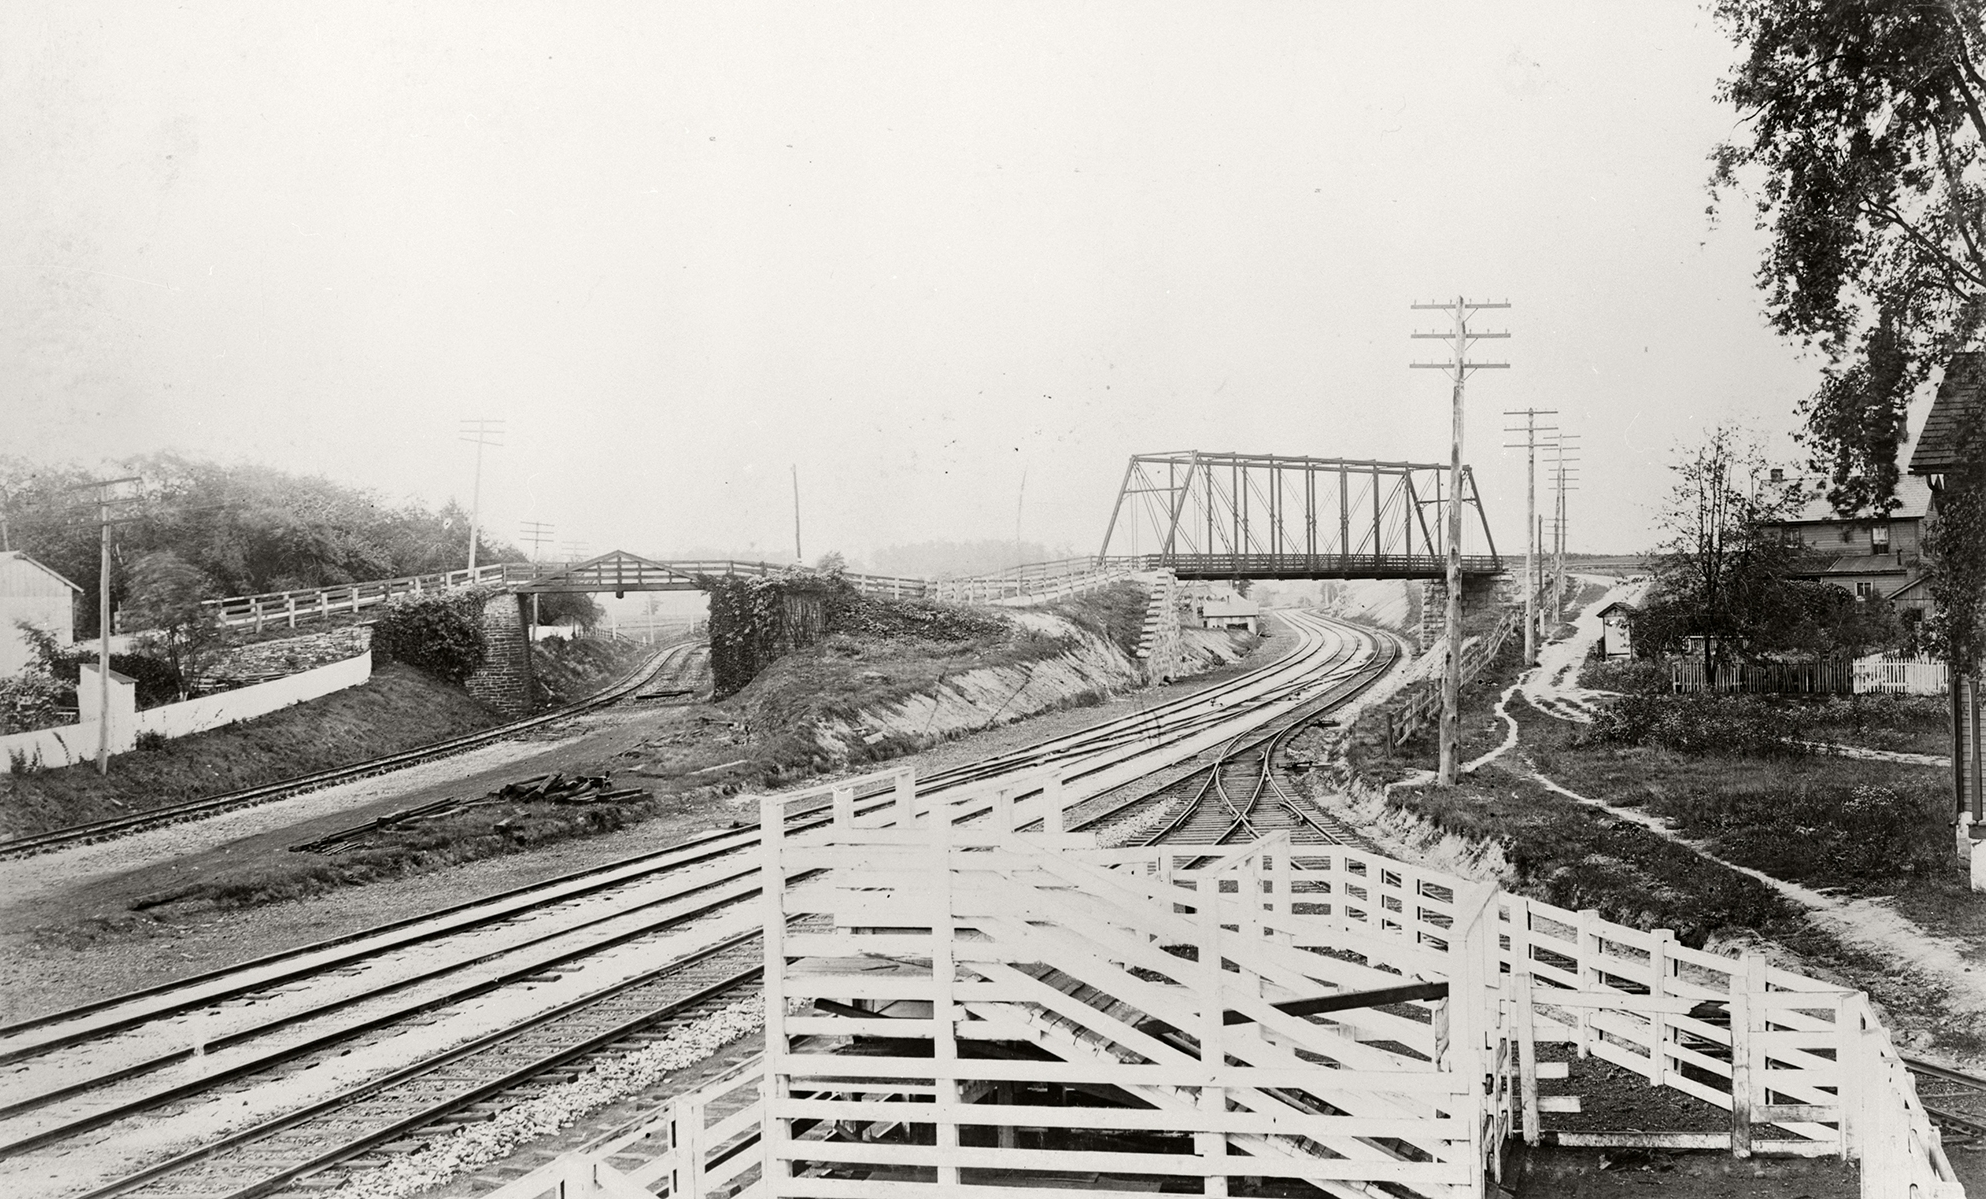 View looking west from the mainline, showing the old (left) and new (right) alignments of the right of way. Soon the old right of way and overpass would be removed. Cattle pens and a siding in the immediate foreground are in the vicinity of the freight house which still stands today. Note the absence of the fourth track which indicates that this view was before 1895. Library of Congress HAER collection.